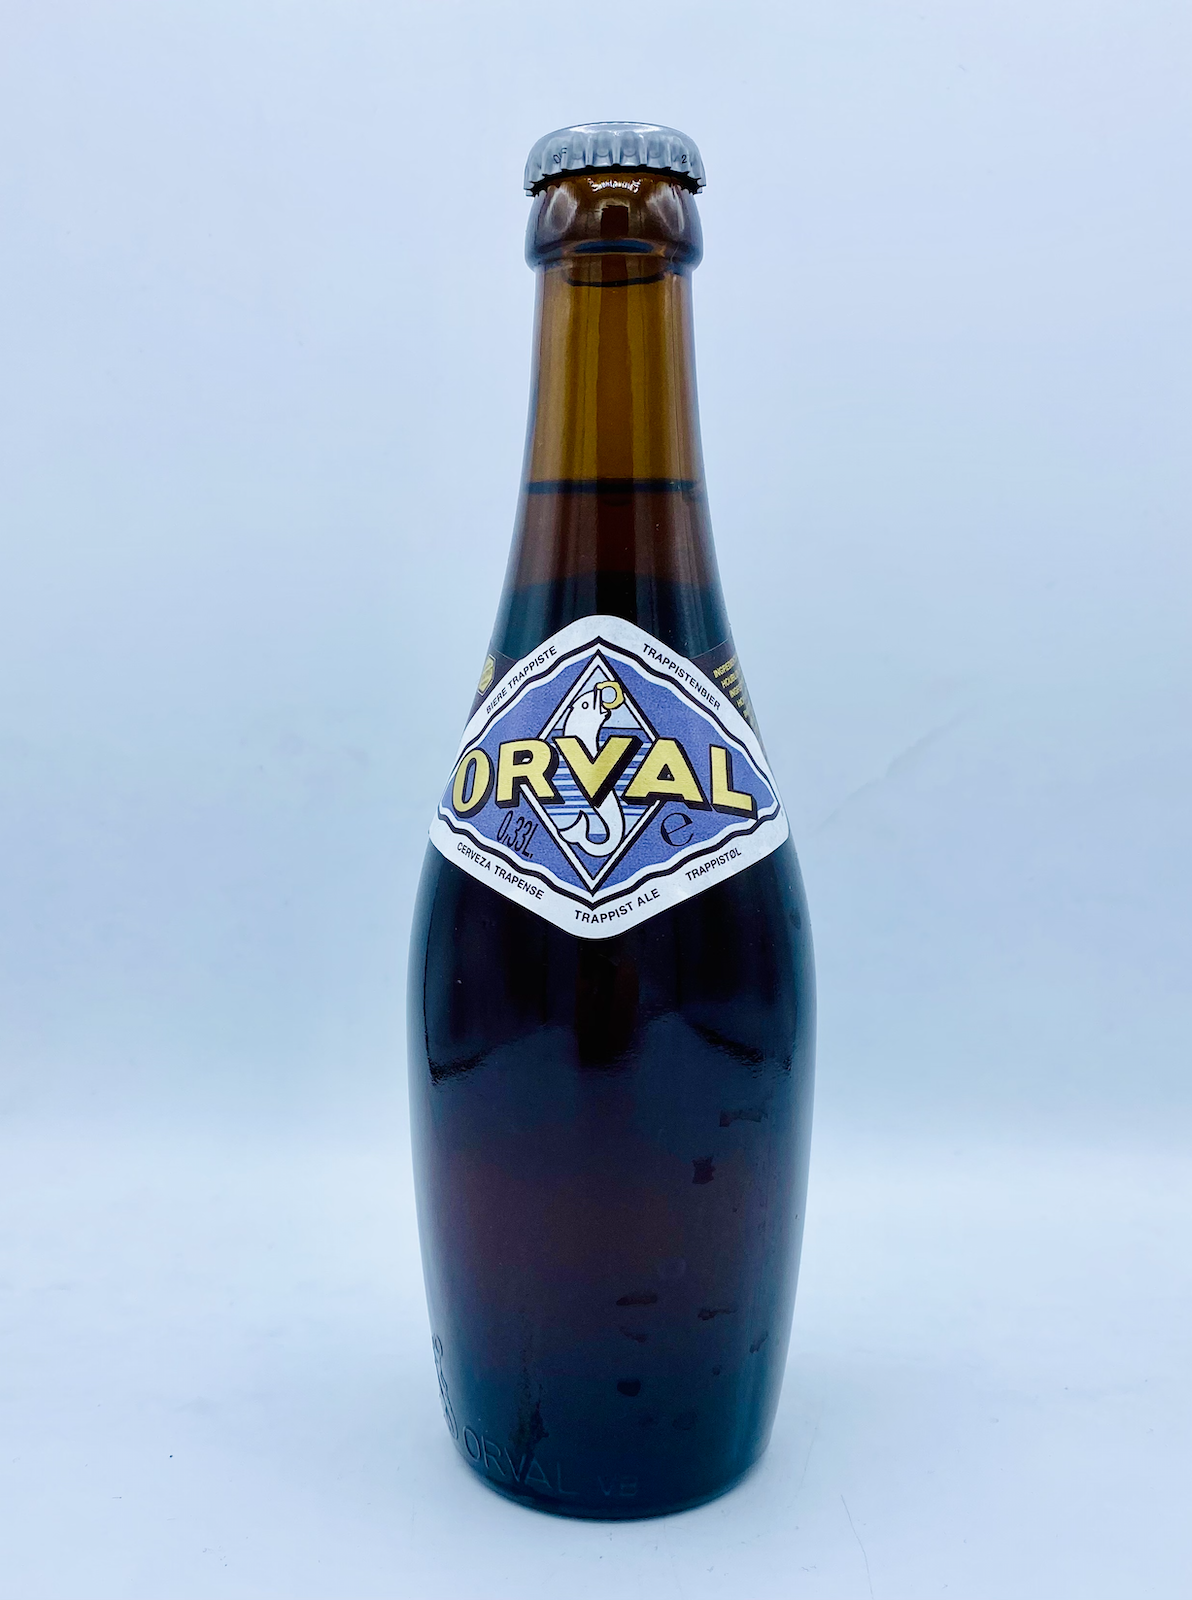 Orval 6.2%